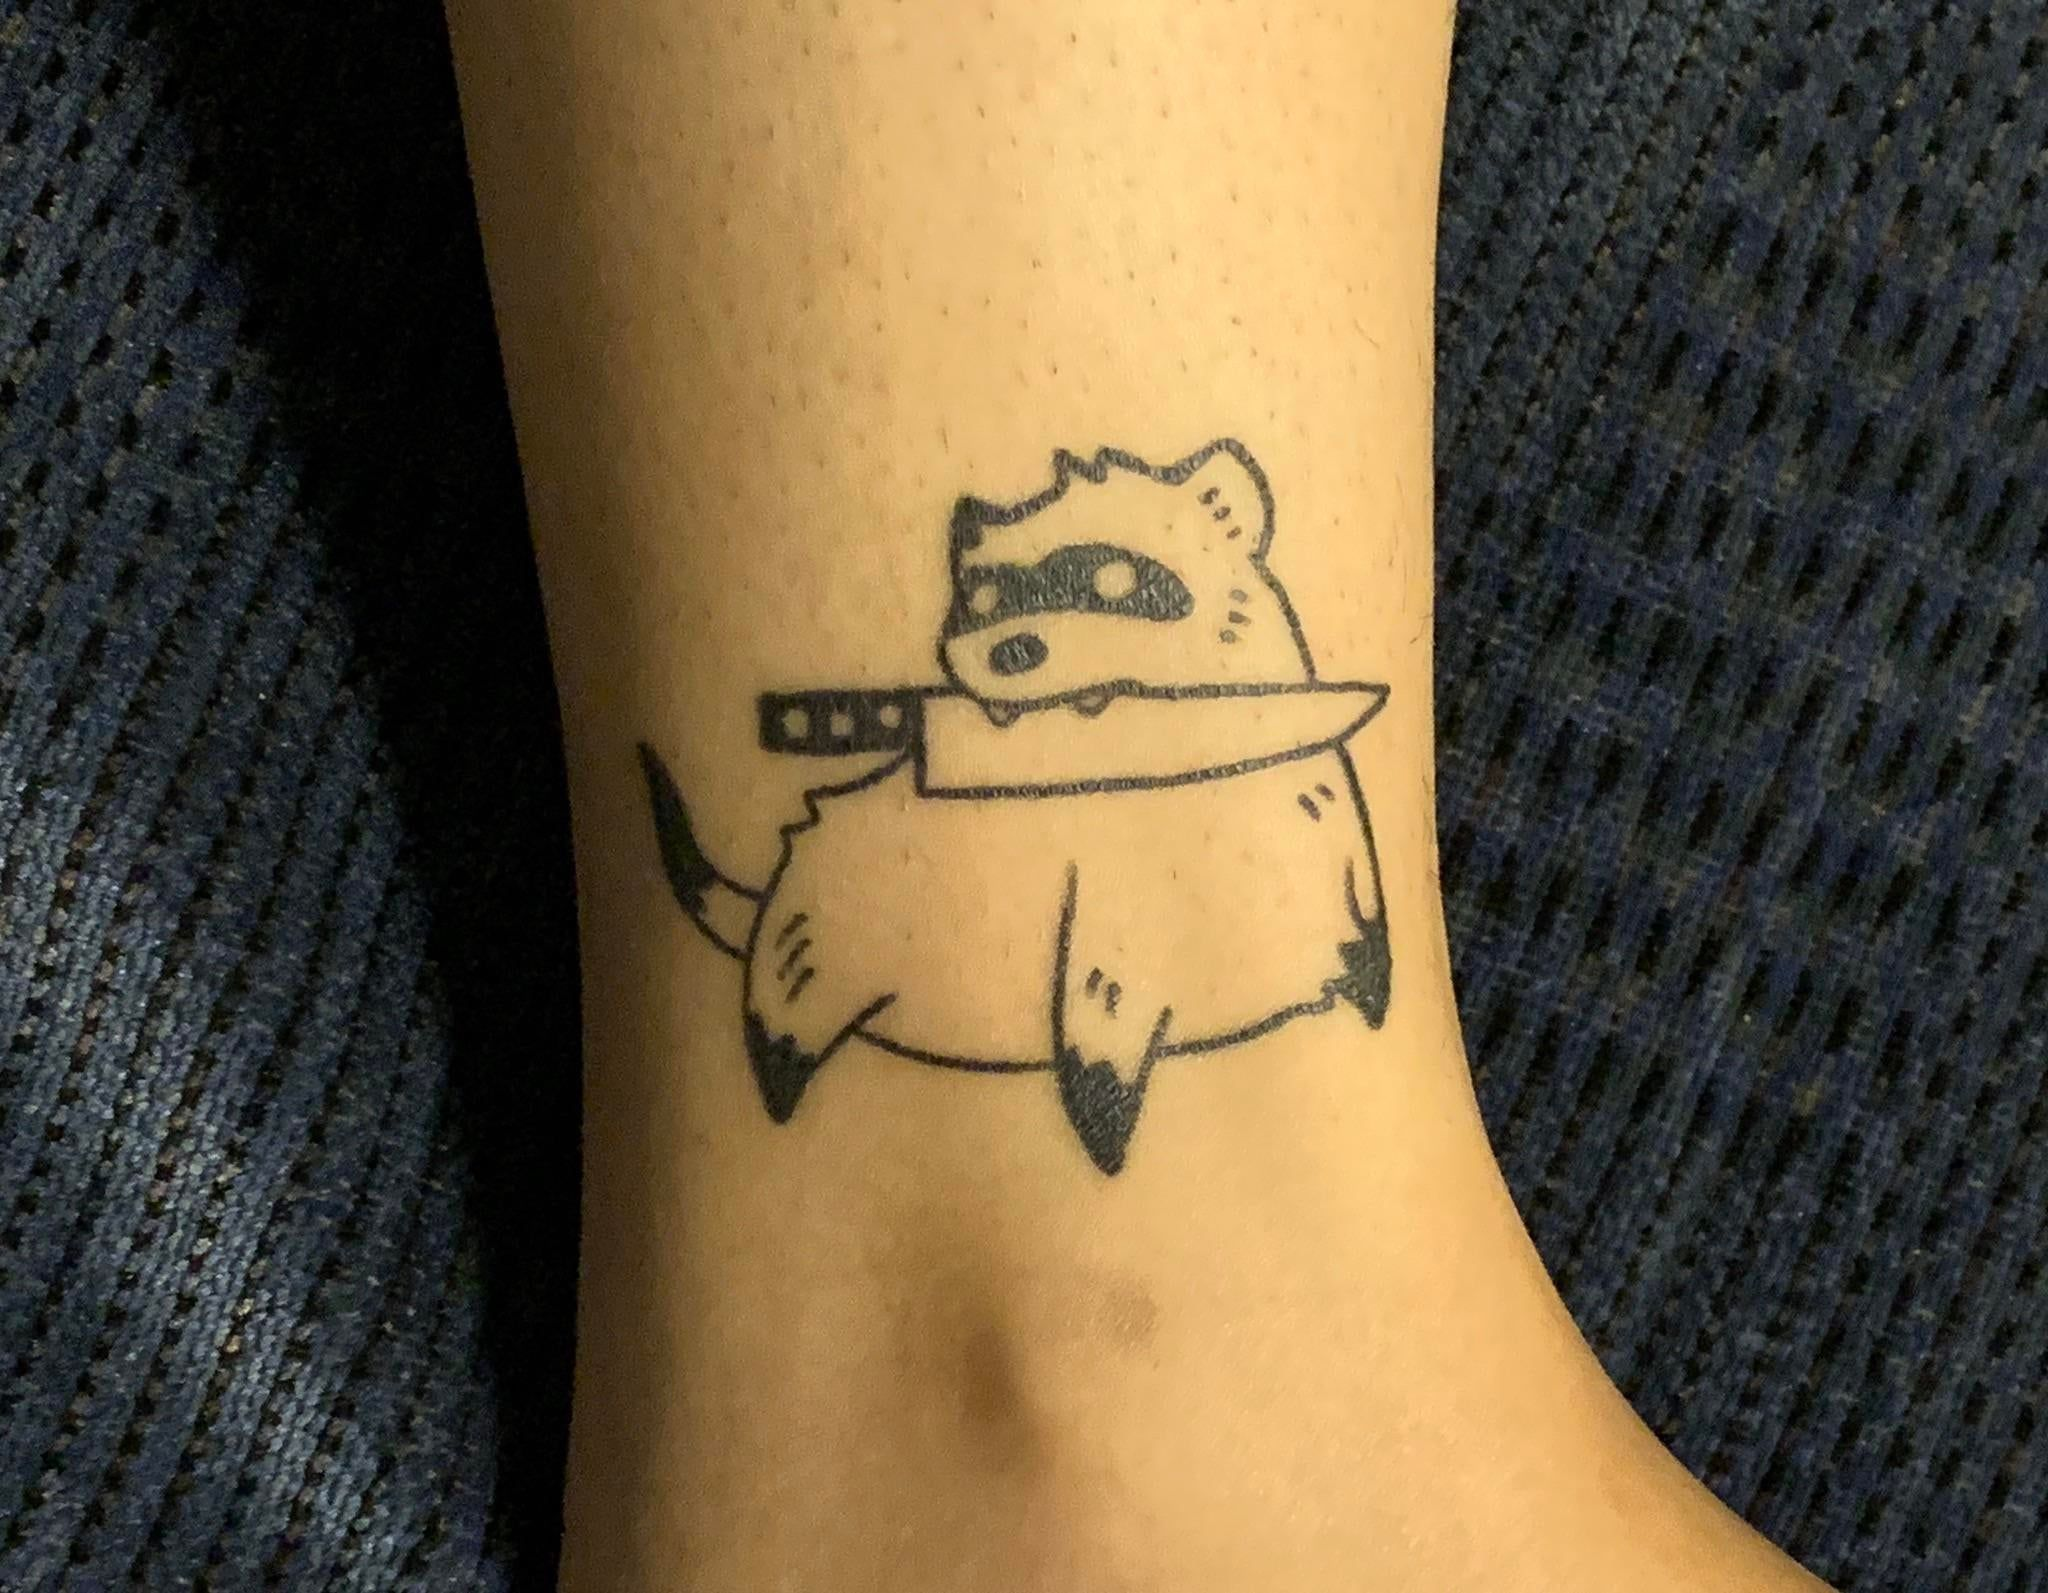 First tattoo, a smol but dangerous ferret. Fully healed